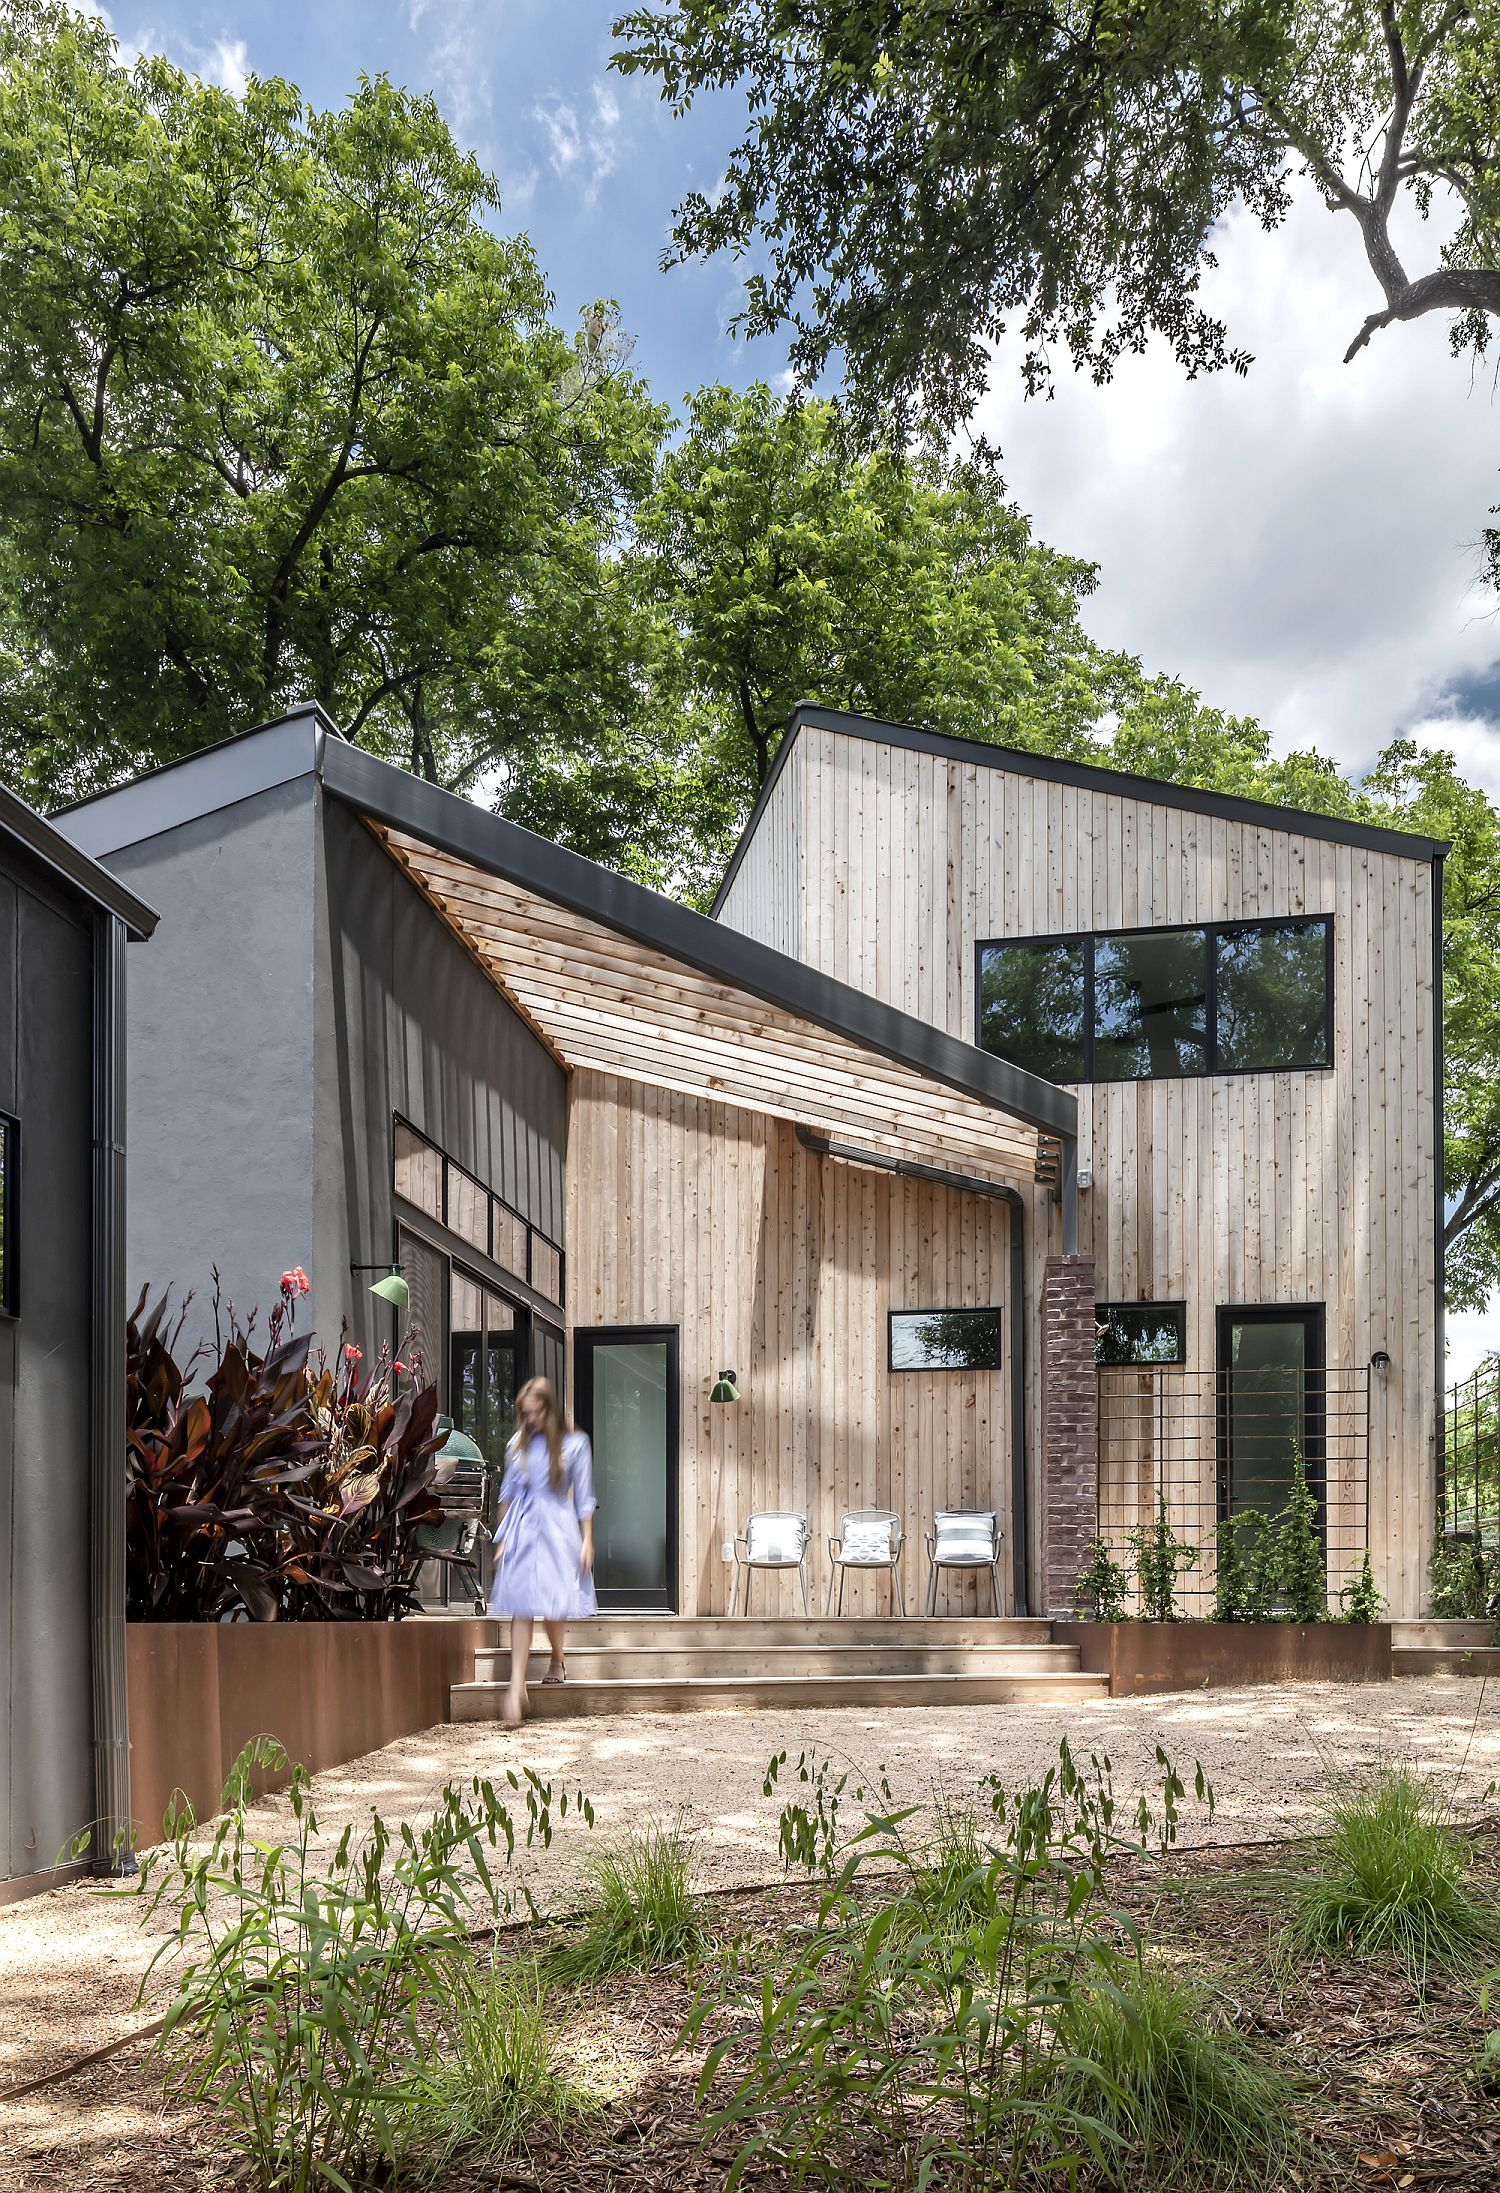 Gable roof and wood exterior give the home a modern cabin look